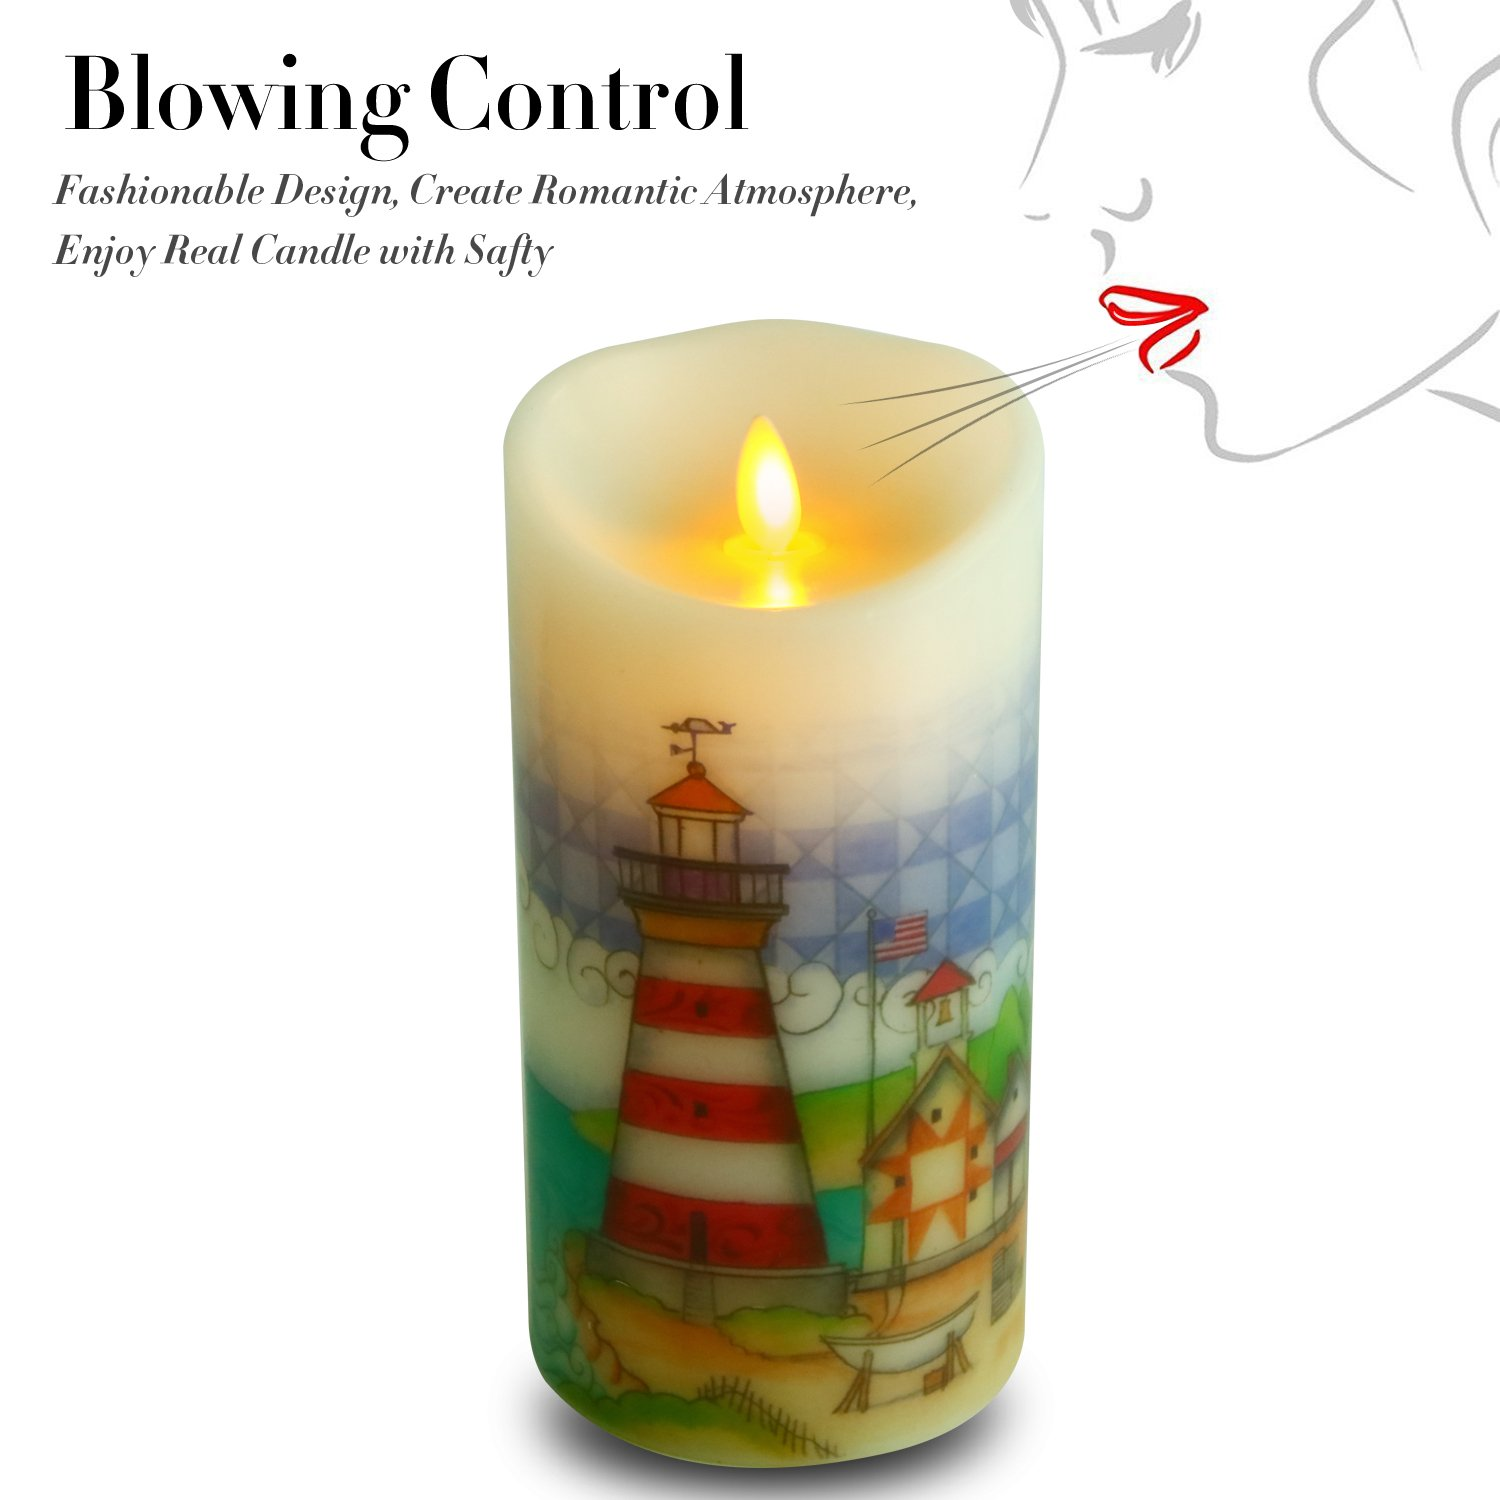 Ksperway Flameless Wax Candles, Moving Wick LED Pillar Candle with Blow ON/Off Control,Timer and Remote 3.5 by 7 Inch Picture (Lighthouse) by Ksperway (Image #1)